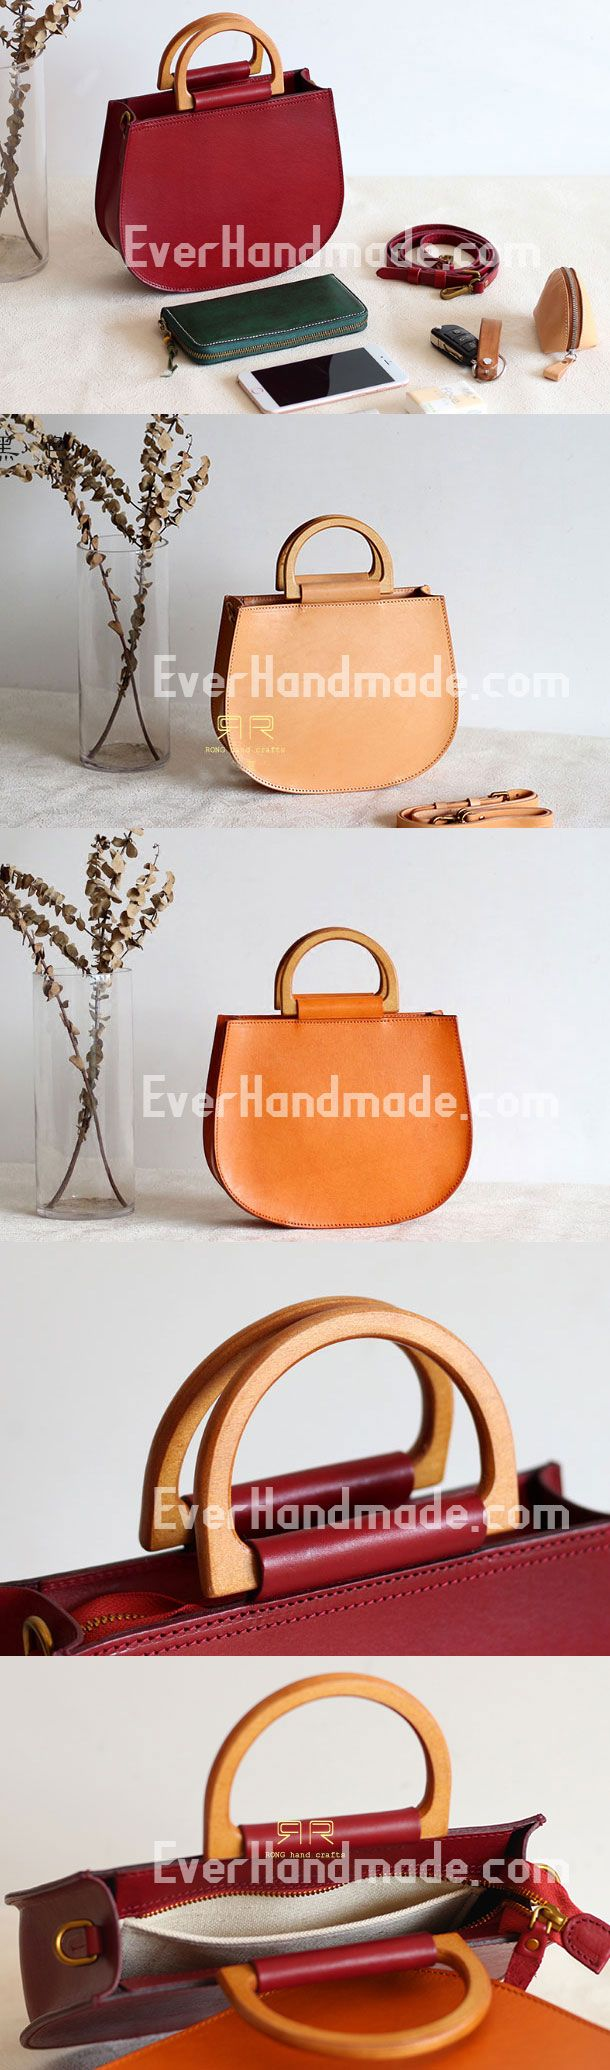 Handmade Leather handbag bag shopper bag for women leather